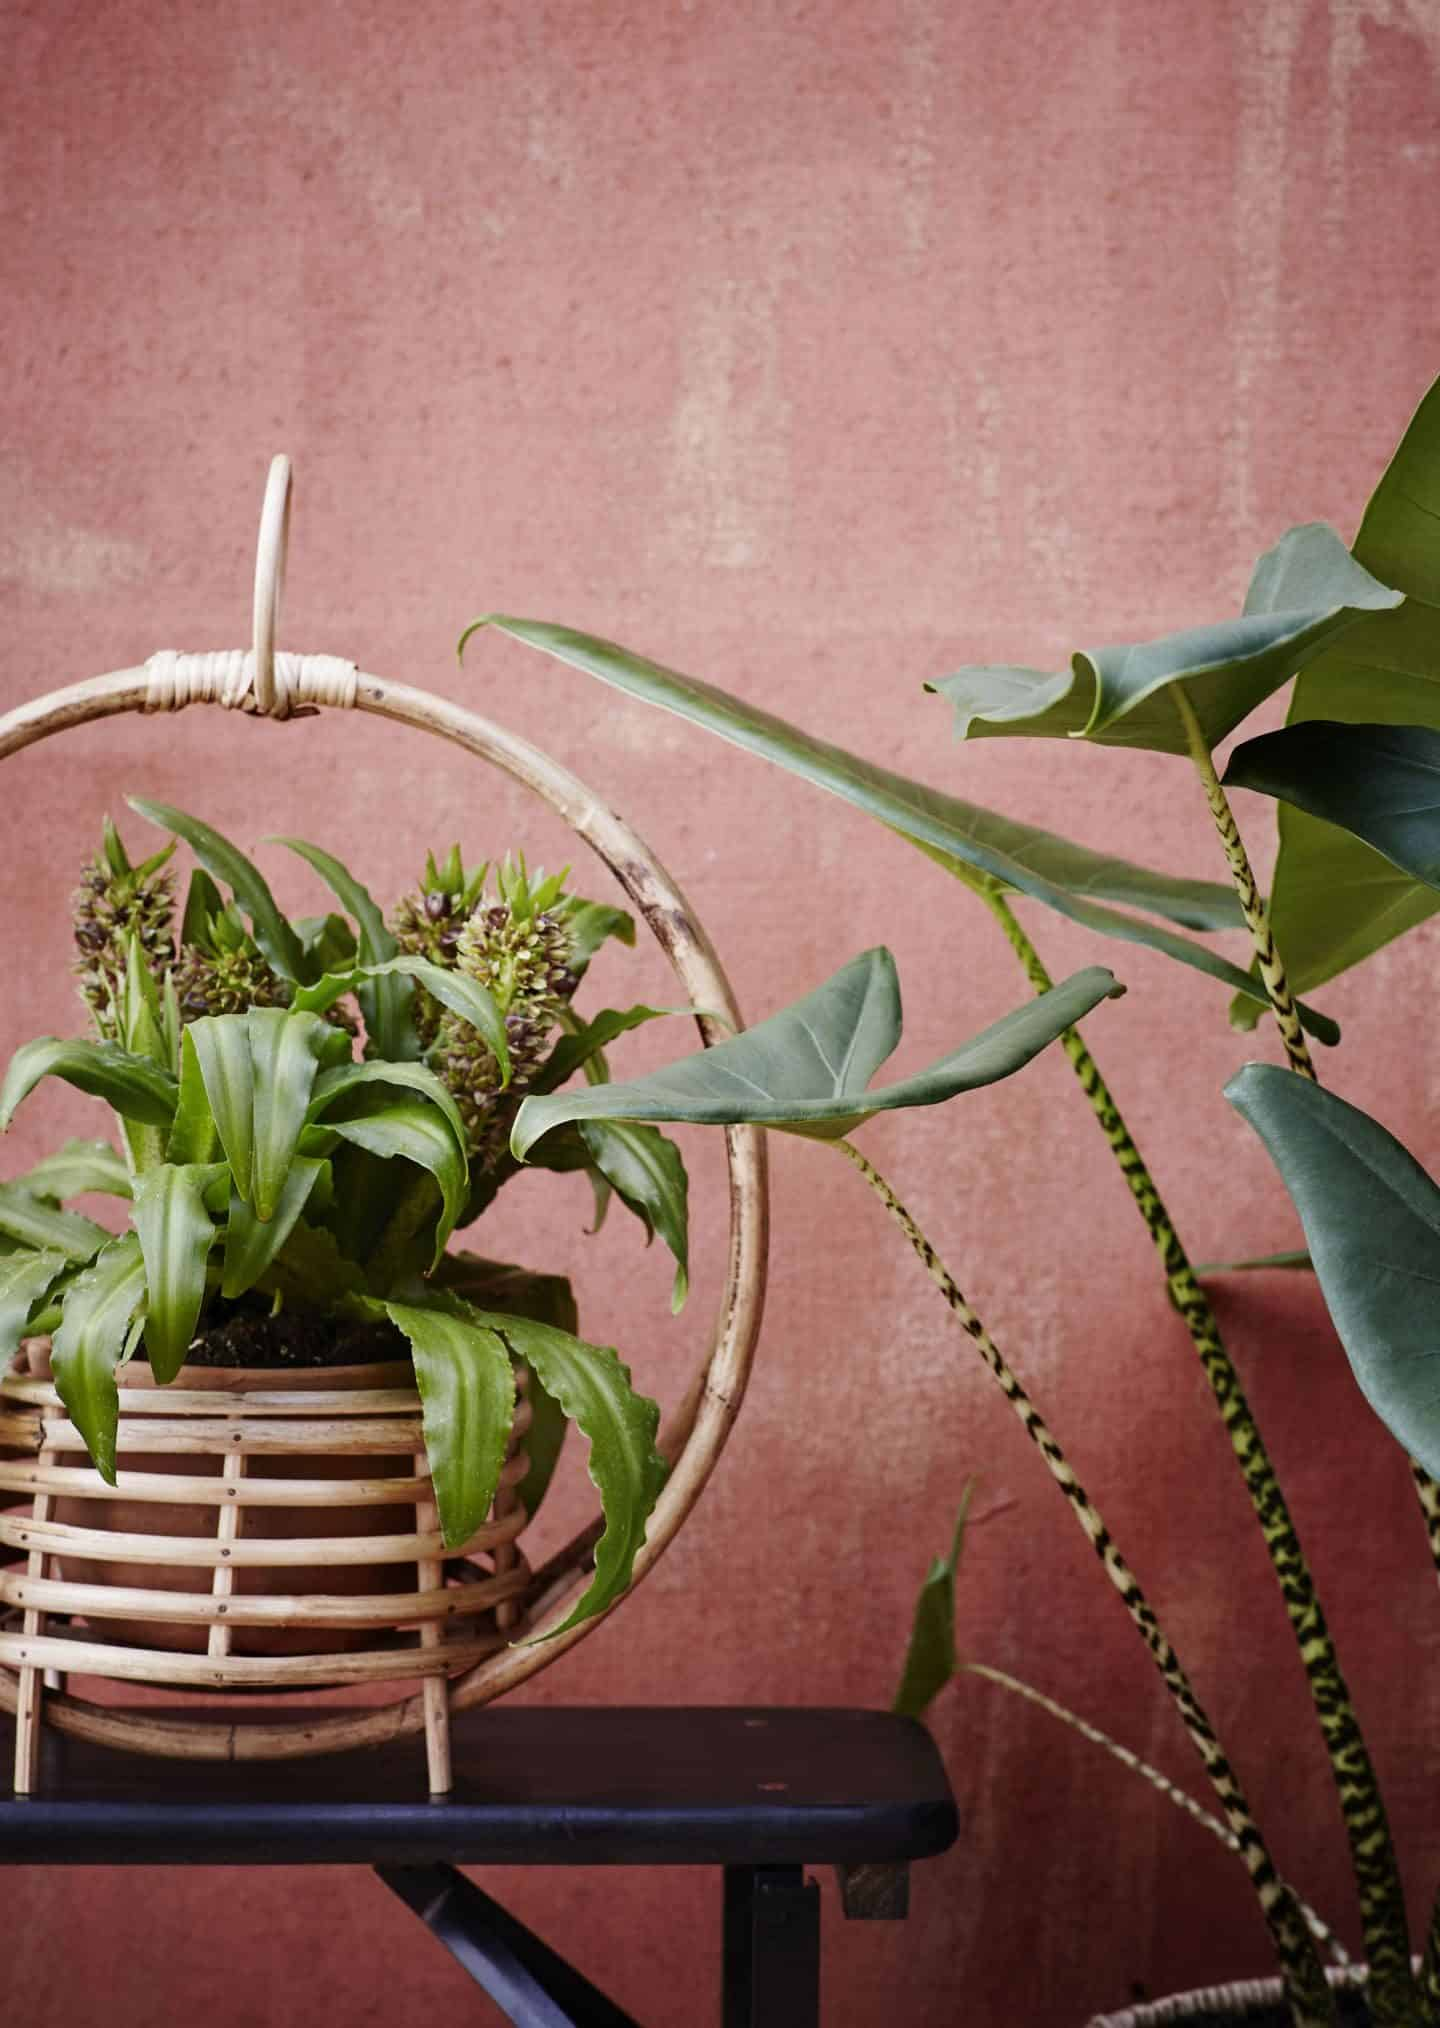 Bohemian Style from Madam Stolz with plants in bamboo holders